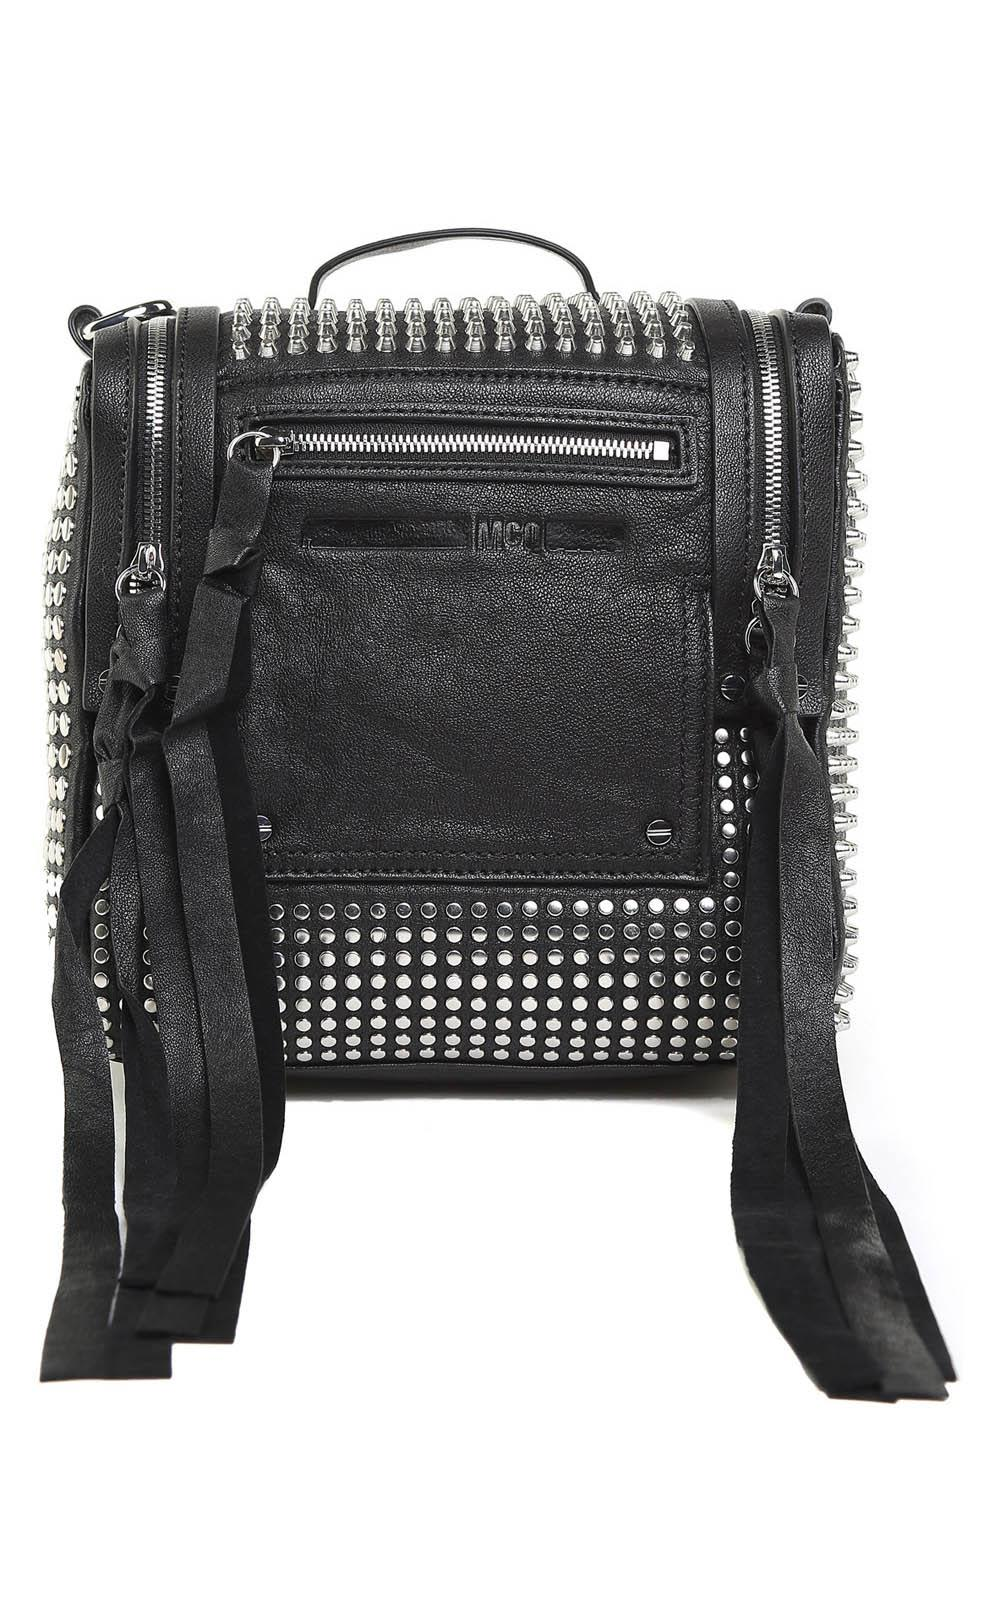 McQ Alexander McQueen Mini Loveless Convertible Studded Leather Backpack